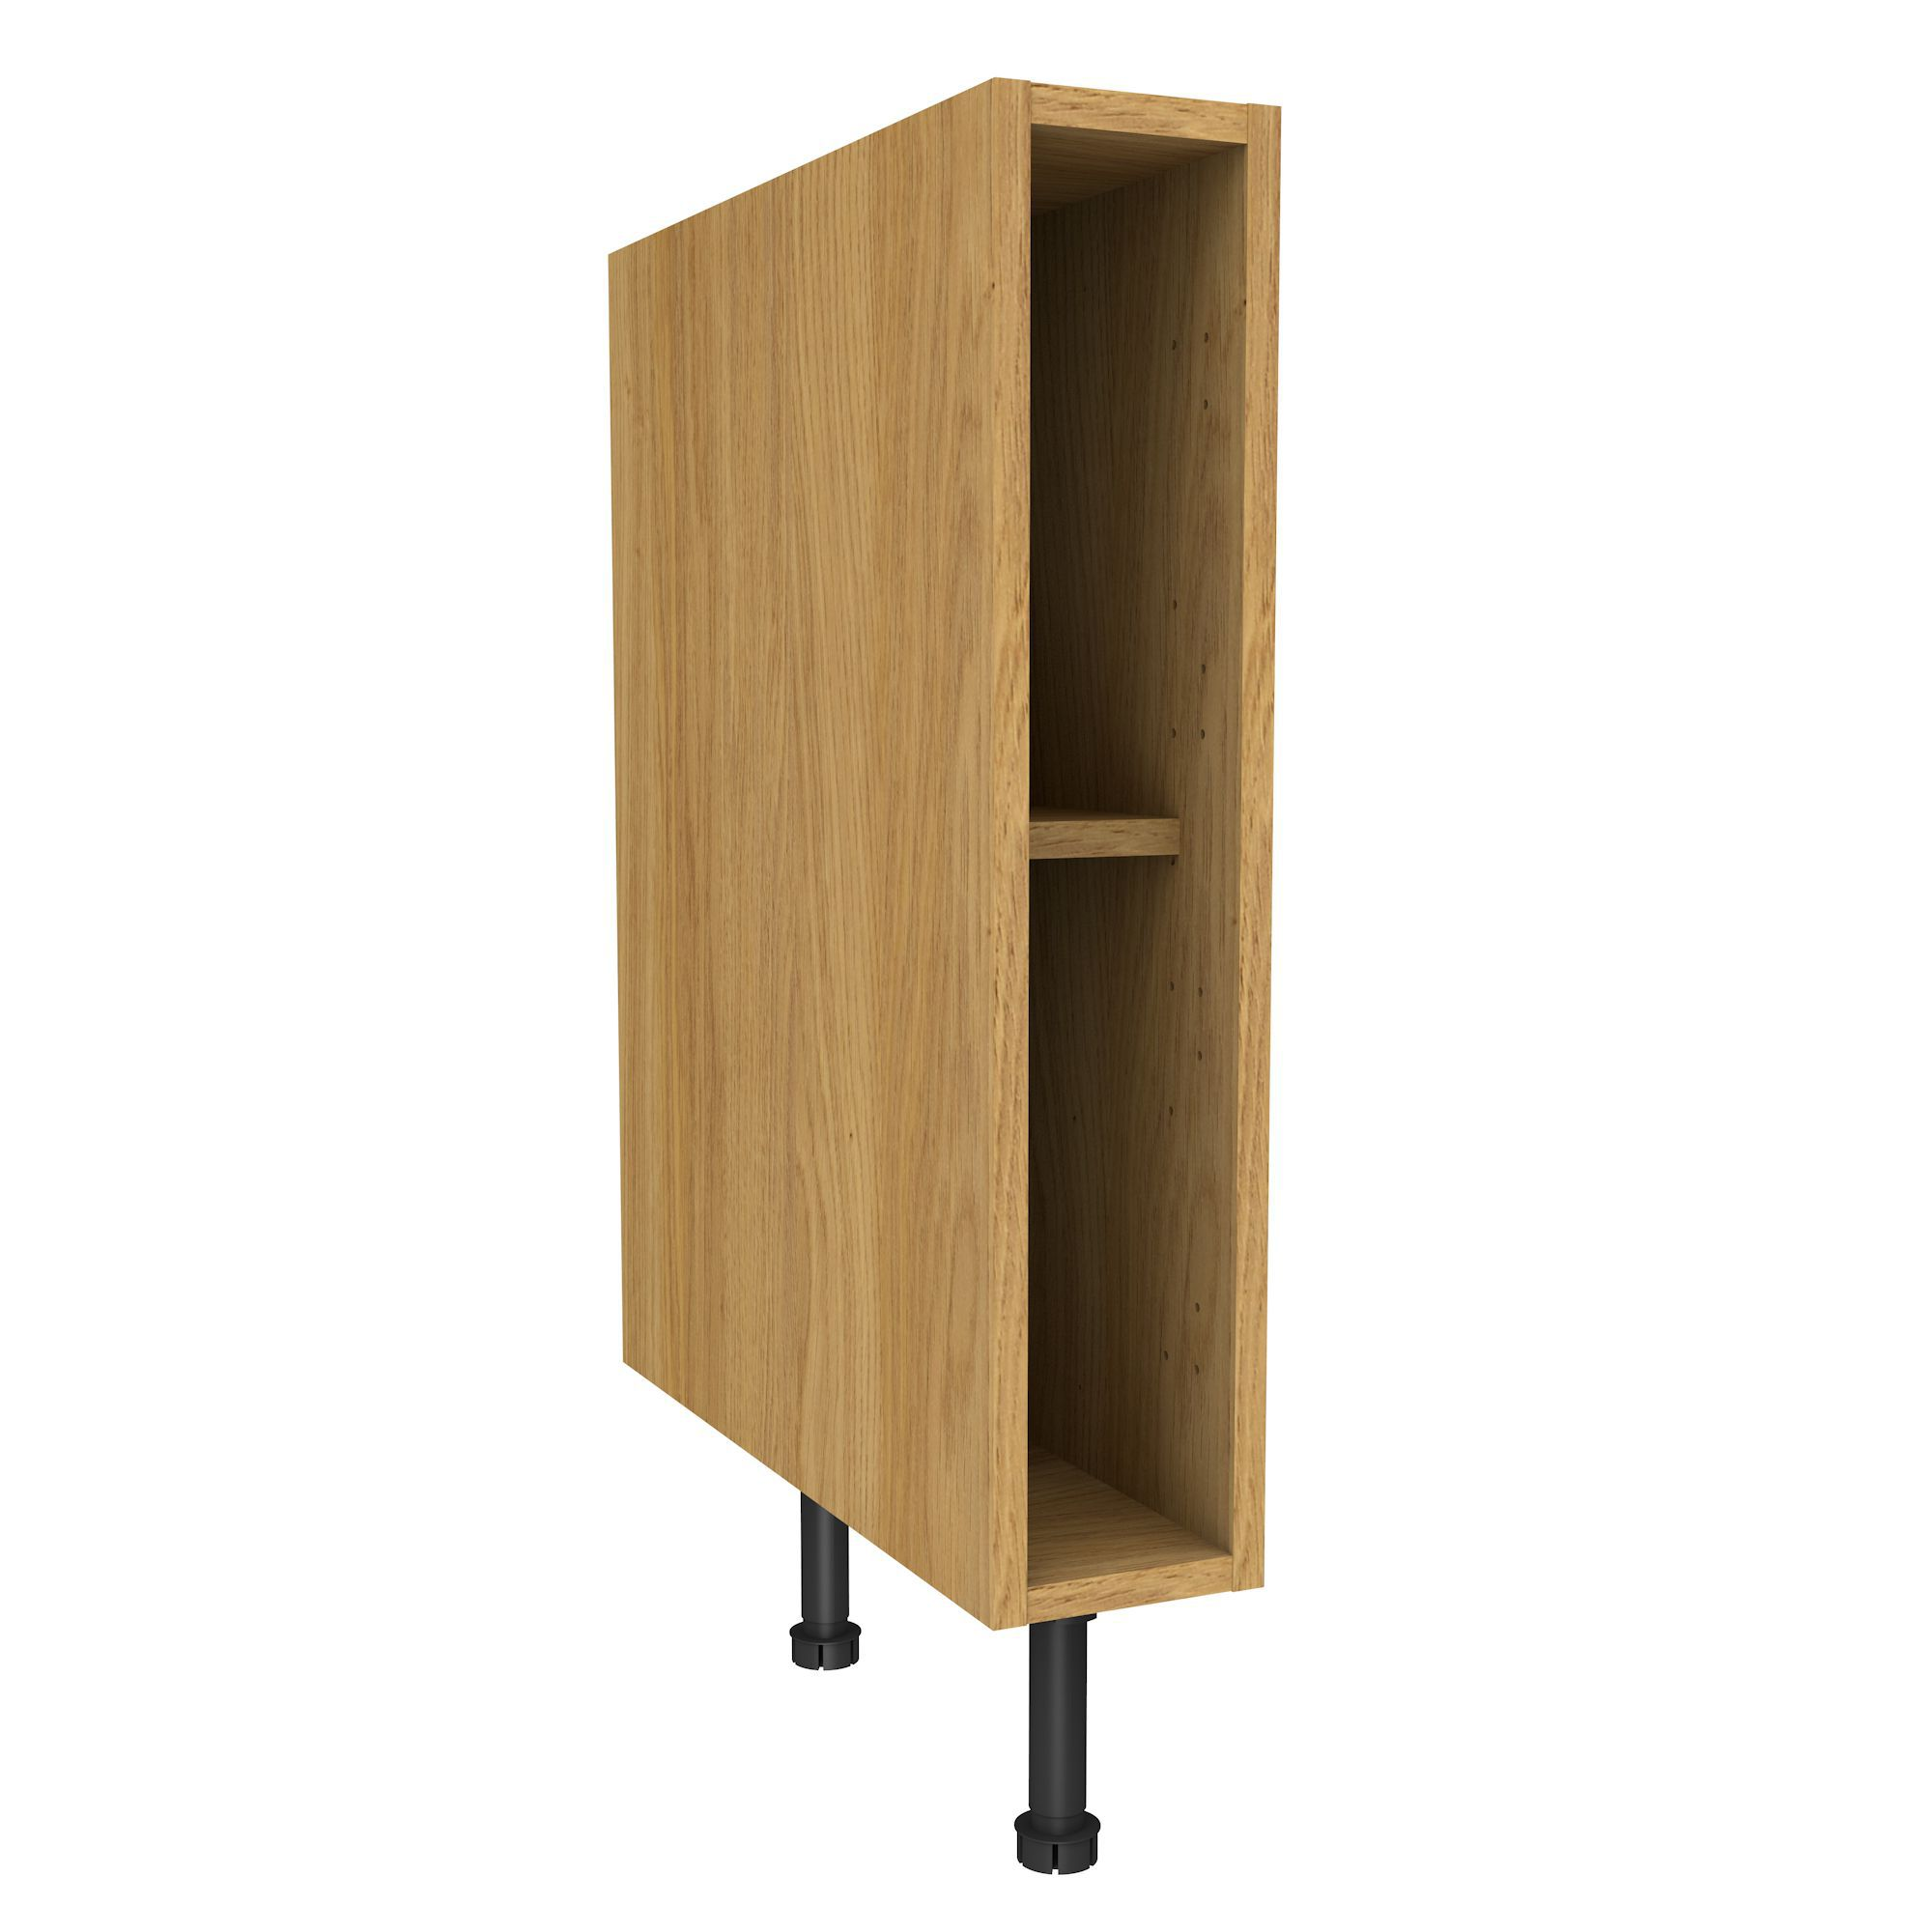 Oak Effect Kitchen Cabinets: Cooke & Lewis Oak Effect Standard Base Cabinet (W)150mm